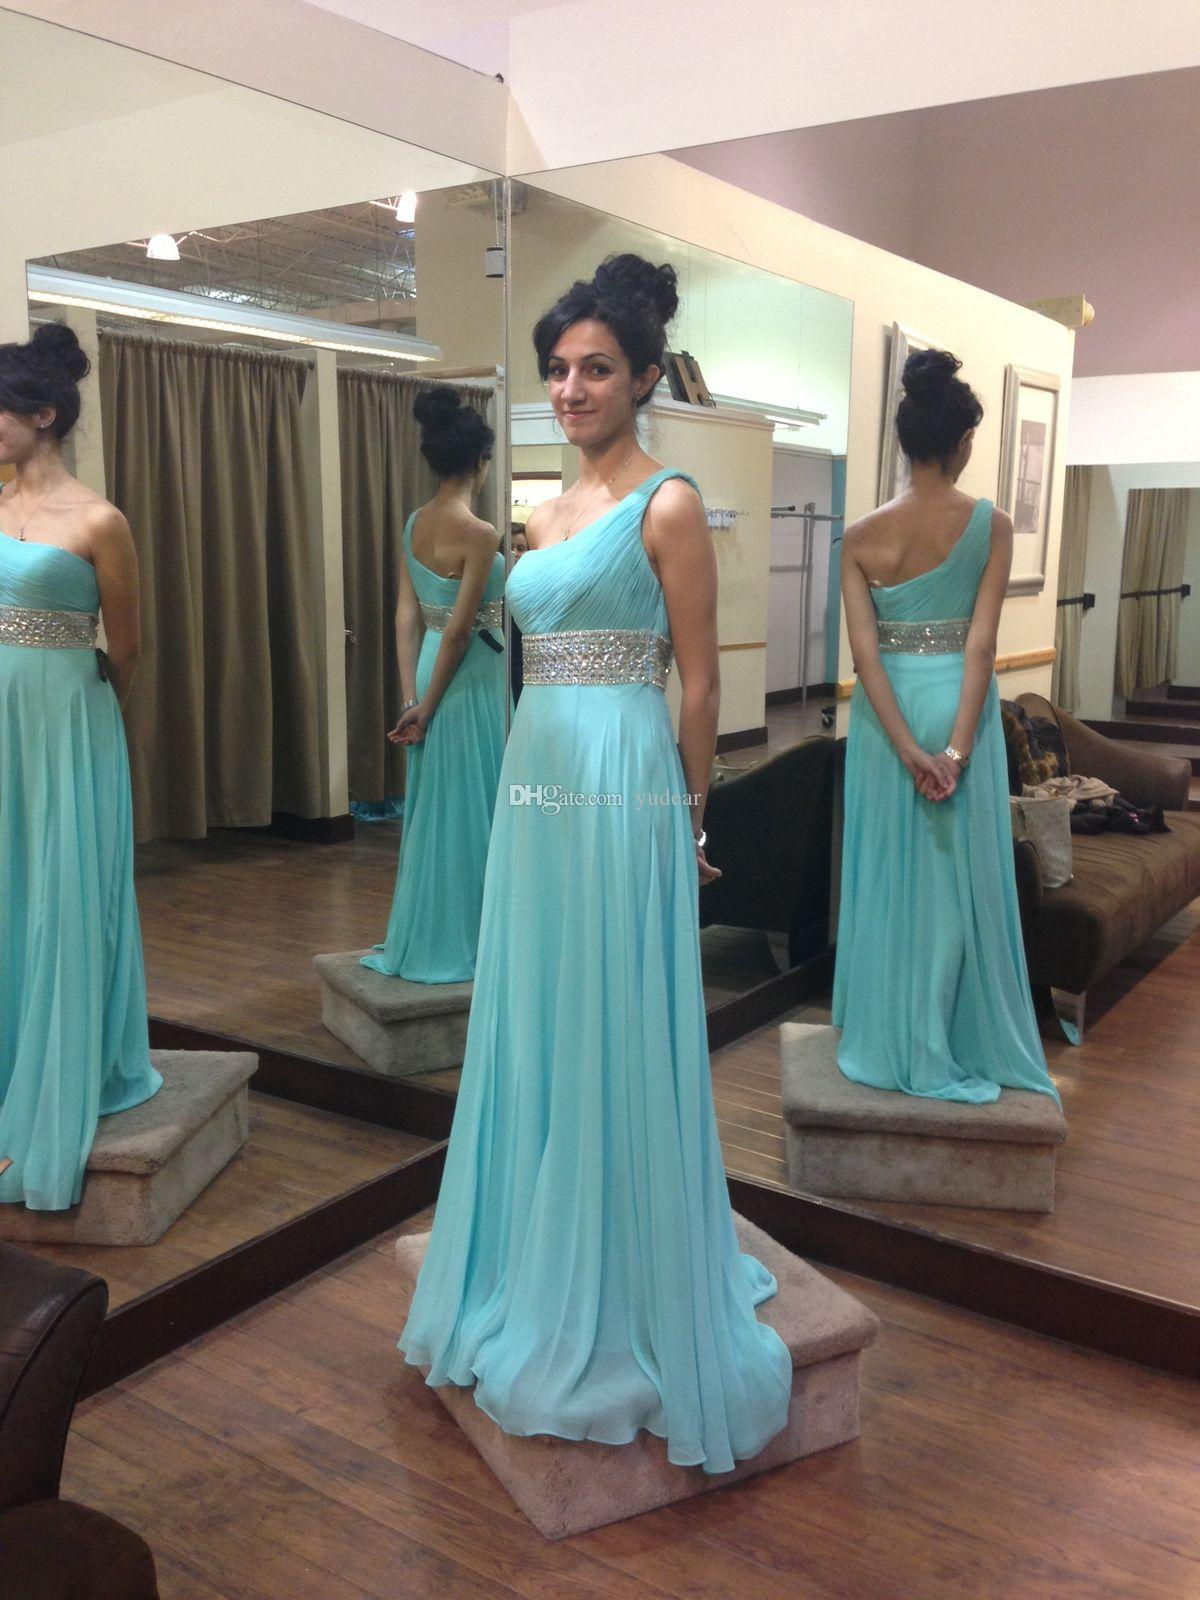 2018 fast shipping women bridesmaid dresses elegant one shoulder a 2018 fast shipping women bridesmaid dresses elegant one shoulder a line sweep train evening dresses draped backless dresses for party cheap 2018 cheap ombrellifo Images